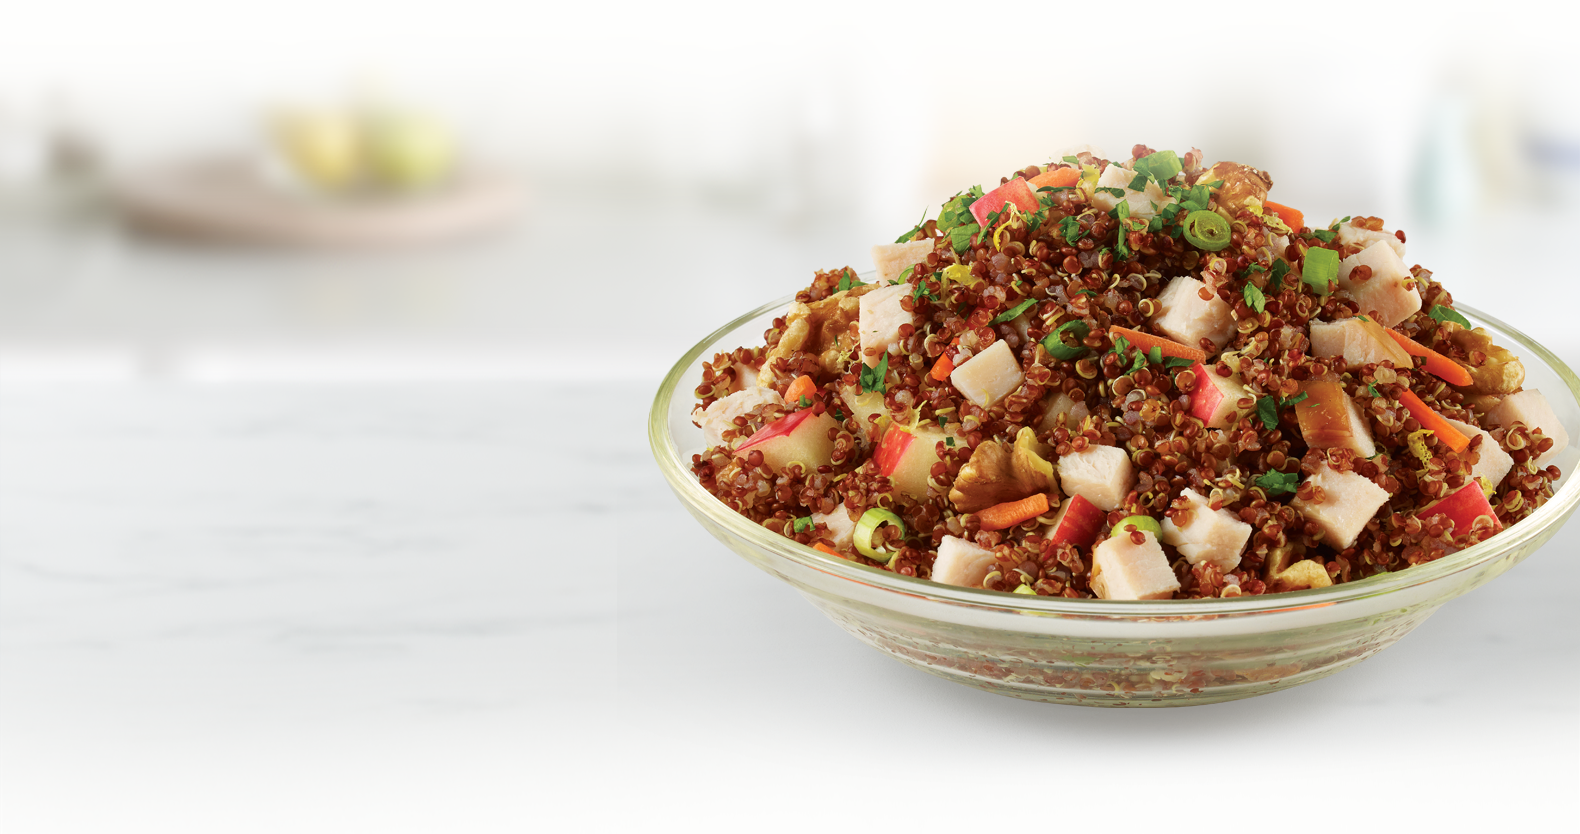 Zesty Quinoa & Turkey Salad